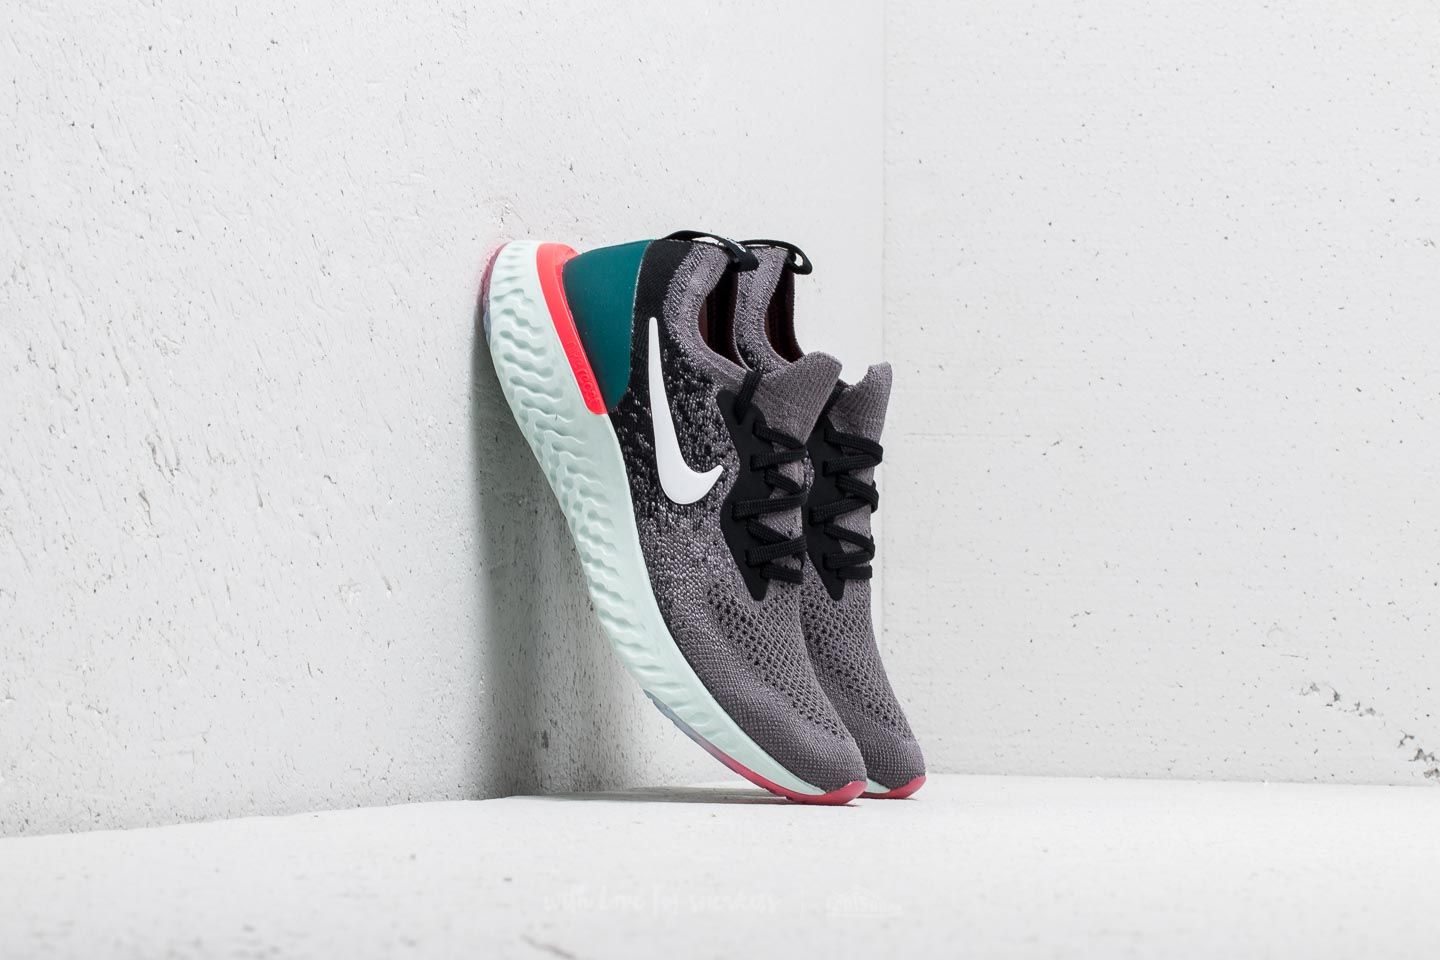 Nike Epic React Flyknit GS Nike Epic React Flyknit (GS) Gunsmoke/ White-Black